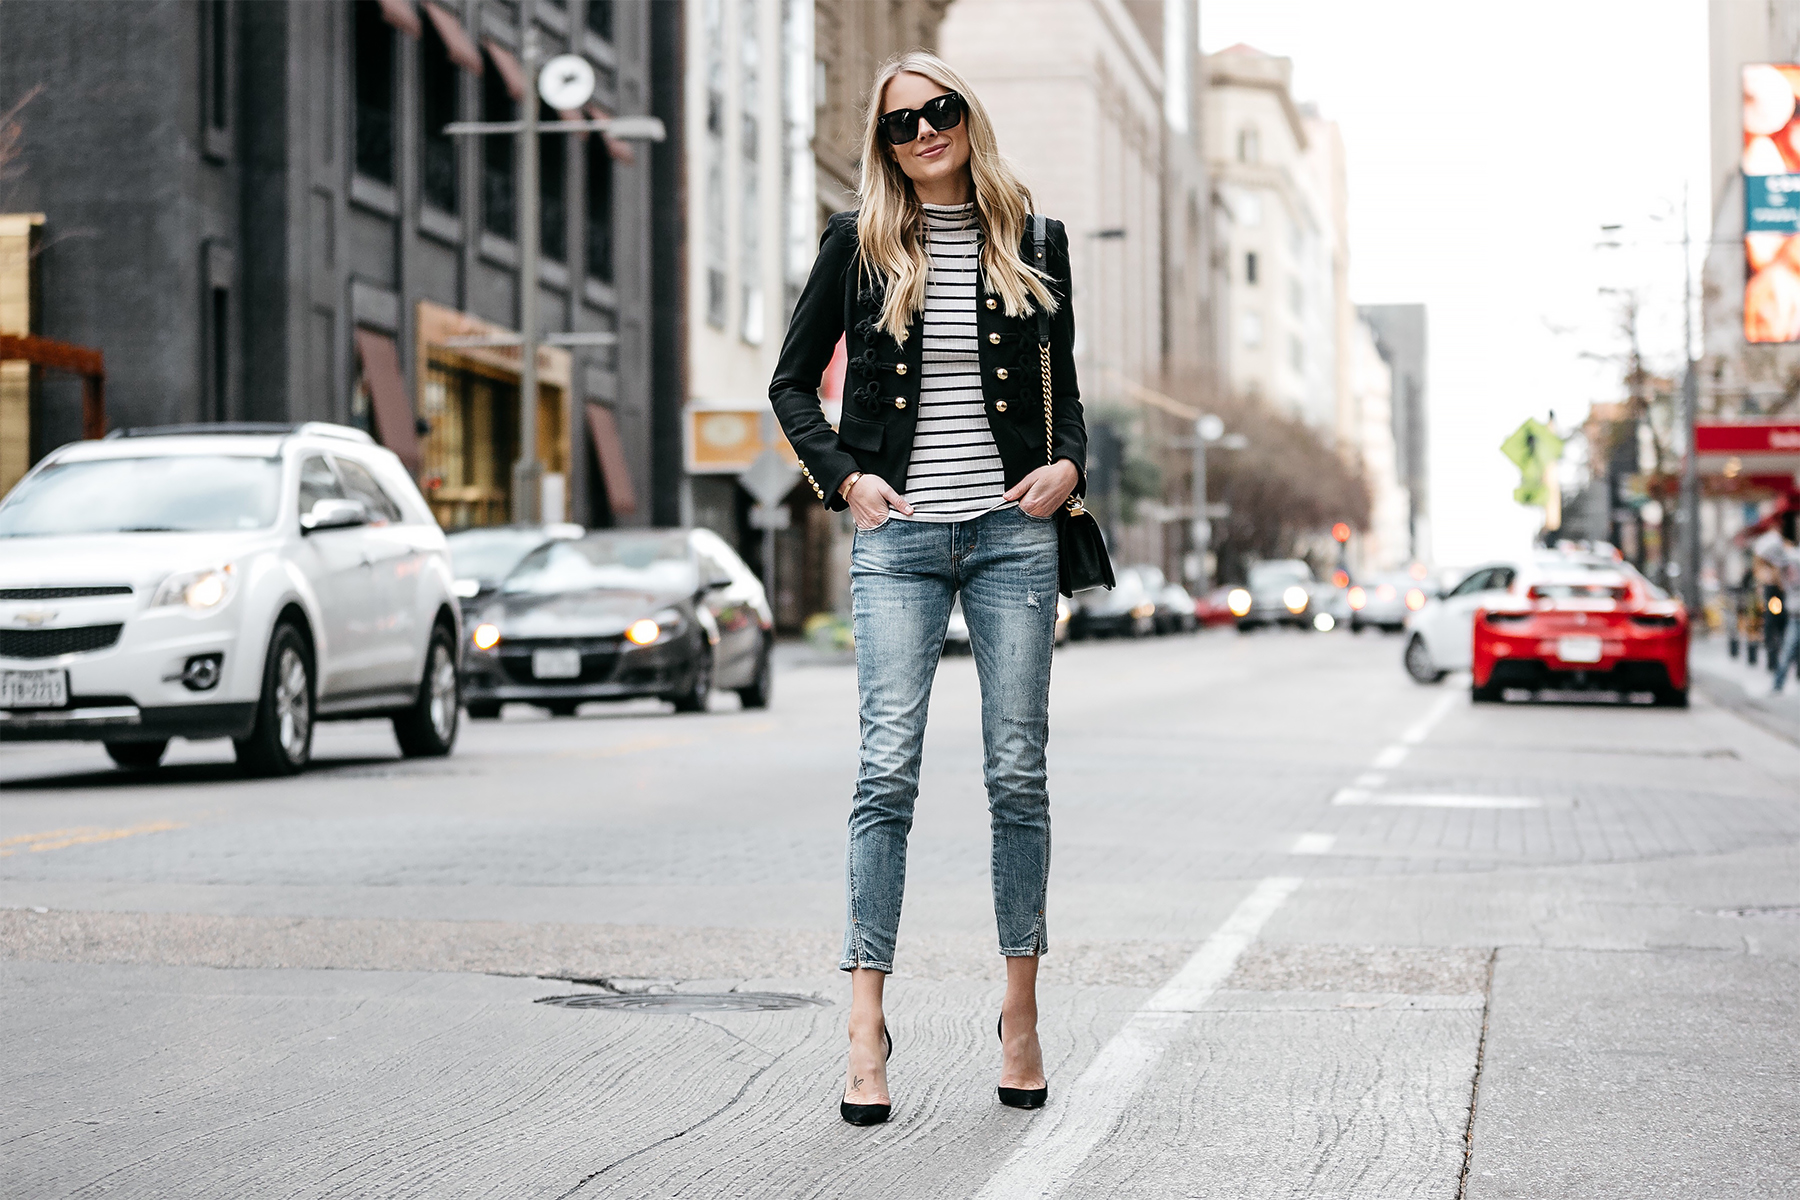 Blonde Woman Wearing Veronica Beard June Band Jacket Black White Striped Turtleneck Nordstrom Denim Skinny Jeans Outfit Christian Louboutin Black Pumps Fashion Jackson Dallas Blogger Fashion Blogger Street Style